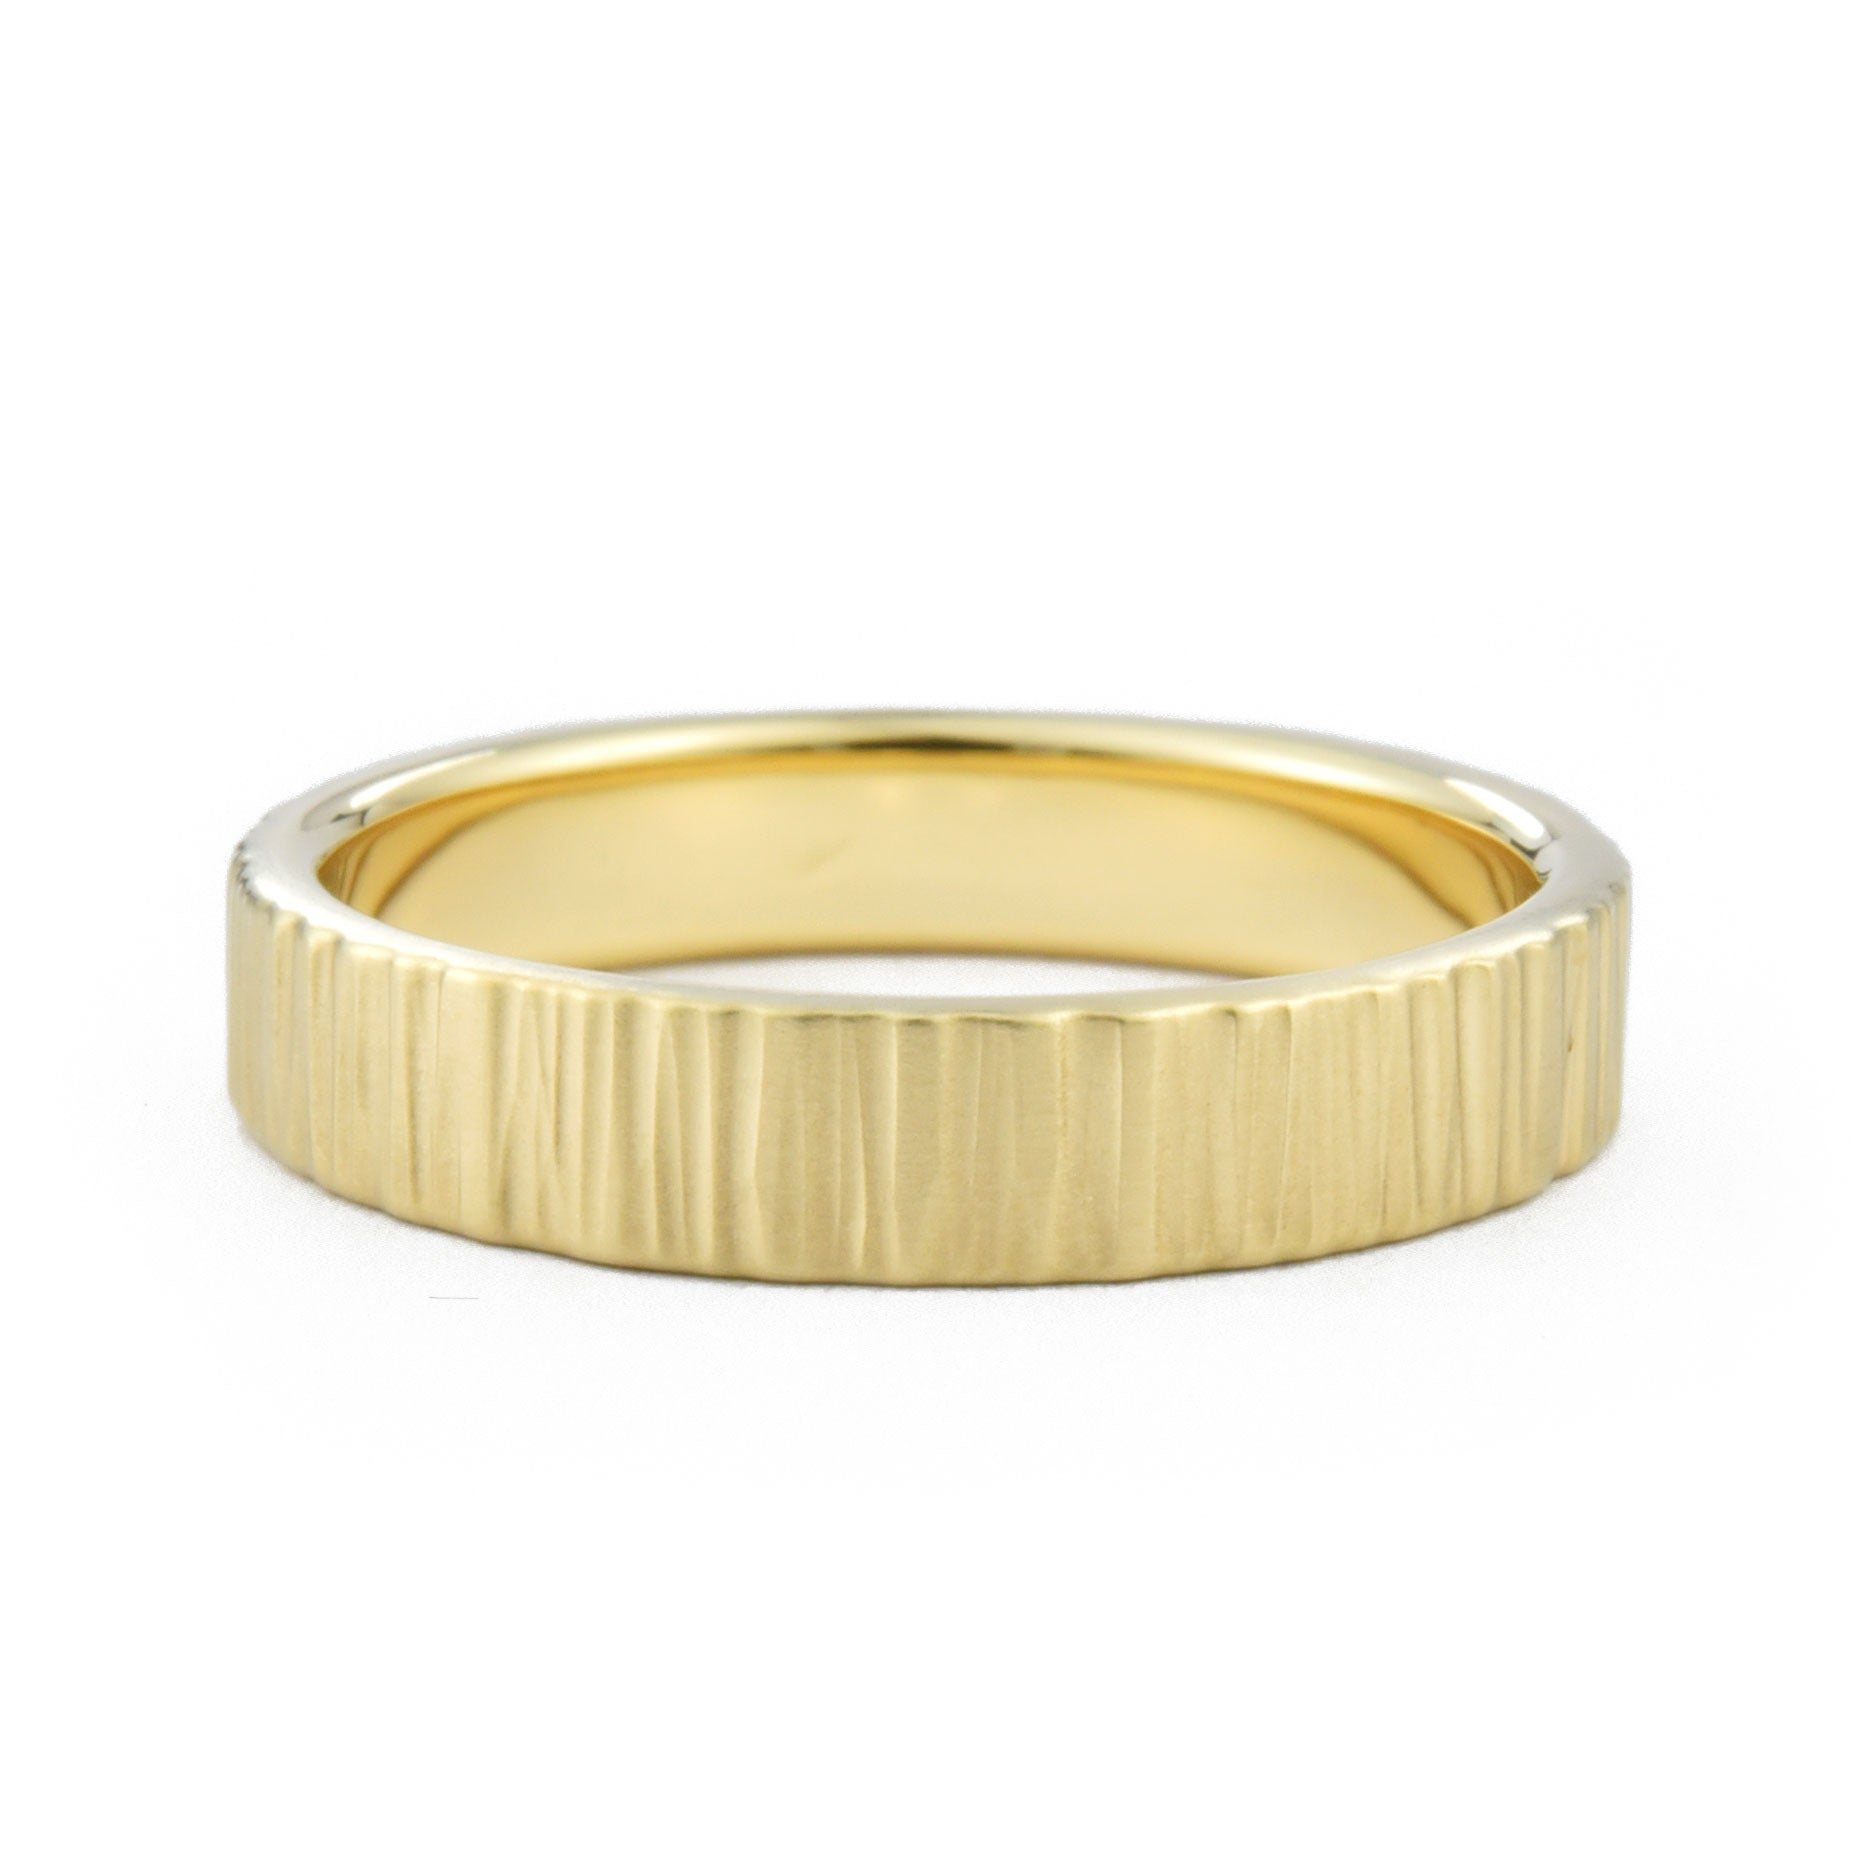 4mm Birch Wedding Band in yellow gold